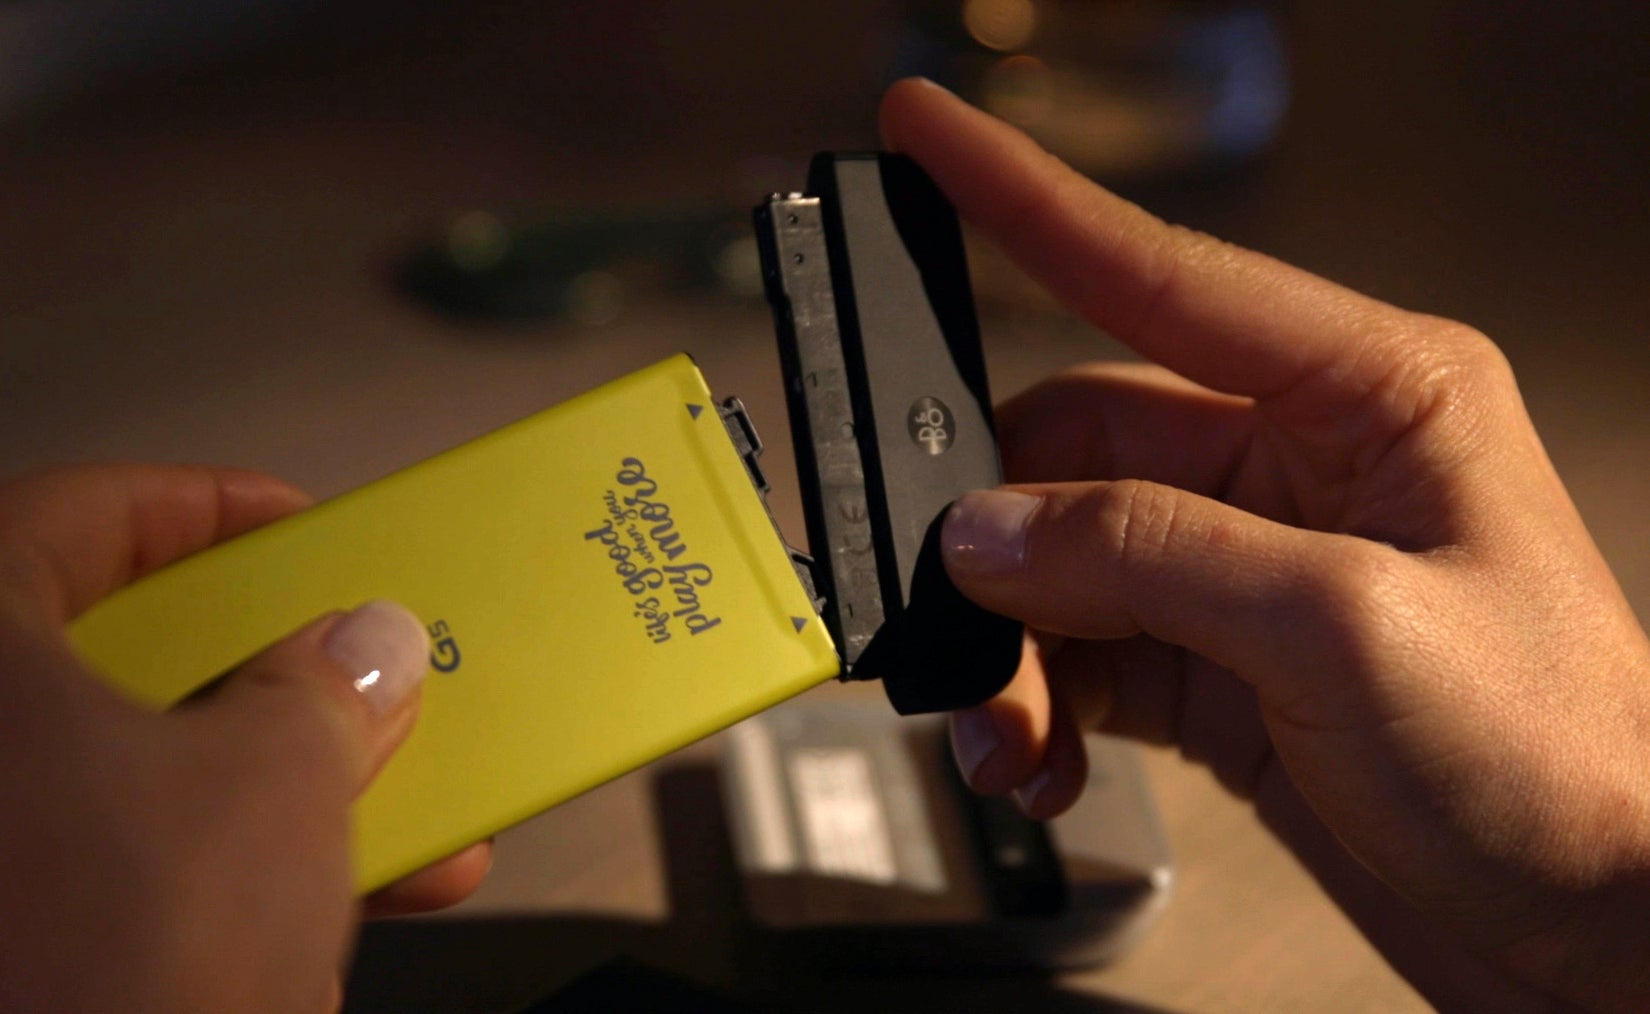 LG G5 review: LG's appetite for risk is admirable, but doesn